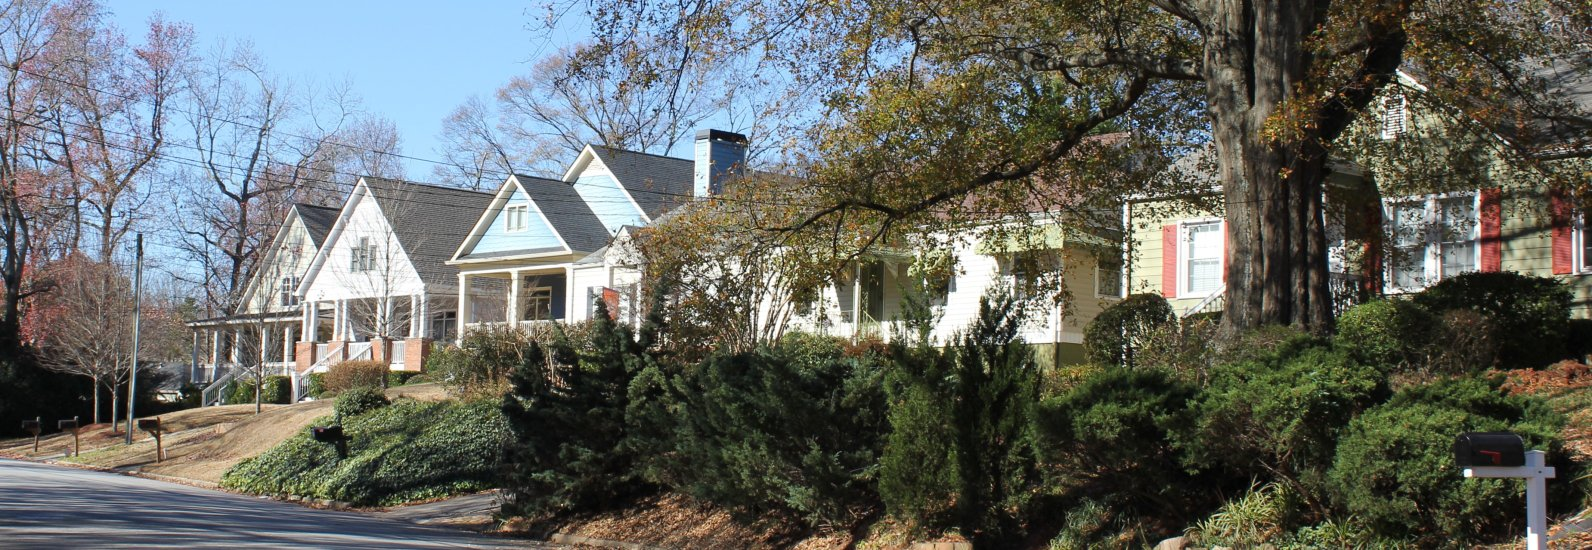 Kirkwood Homes for sale. New listings every 15 minutes